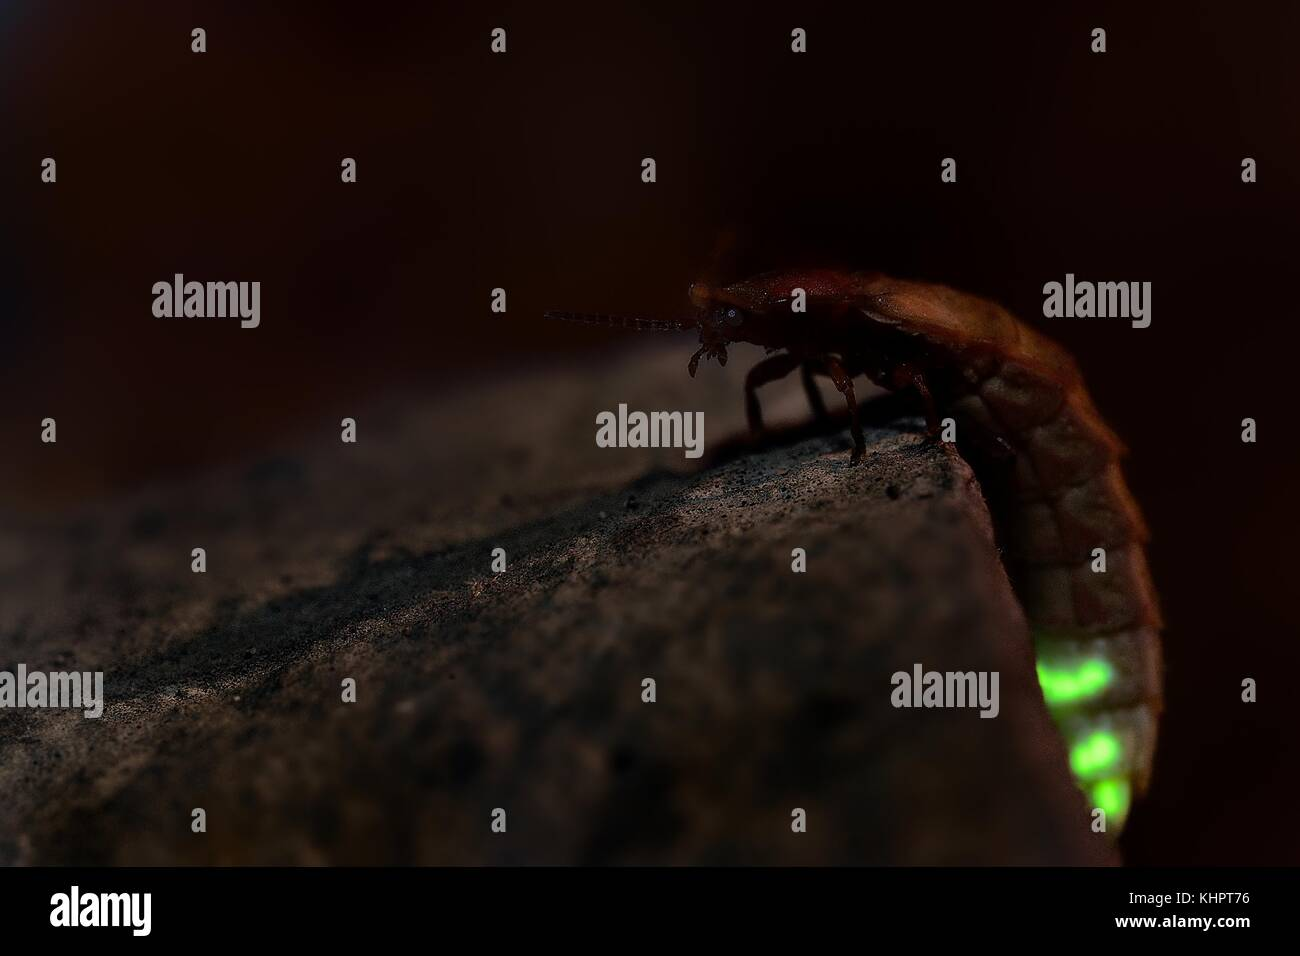 Glow Worm - Lampyris noctiluca female in the night, midnight in Croatia, luring males - Stock Image